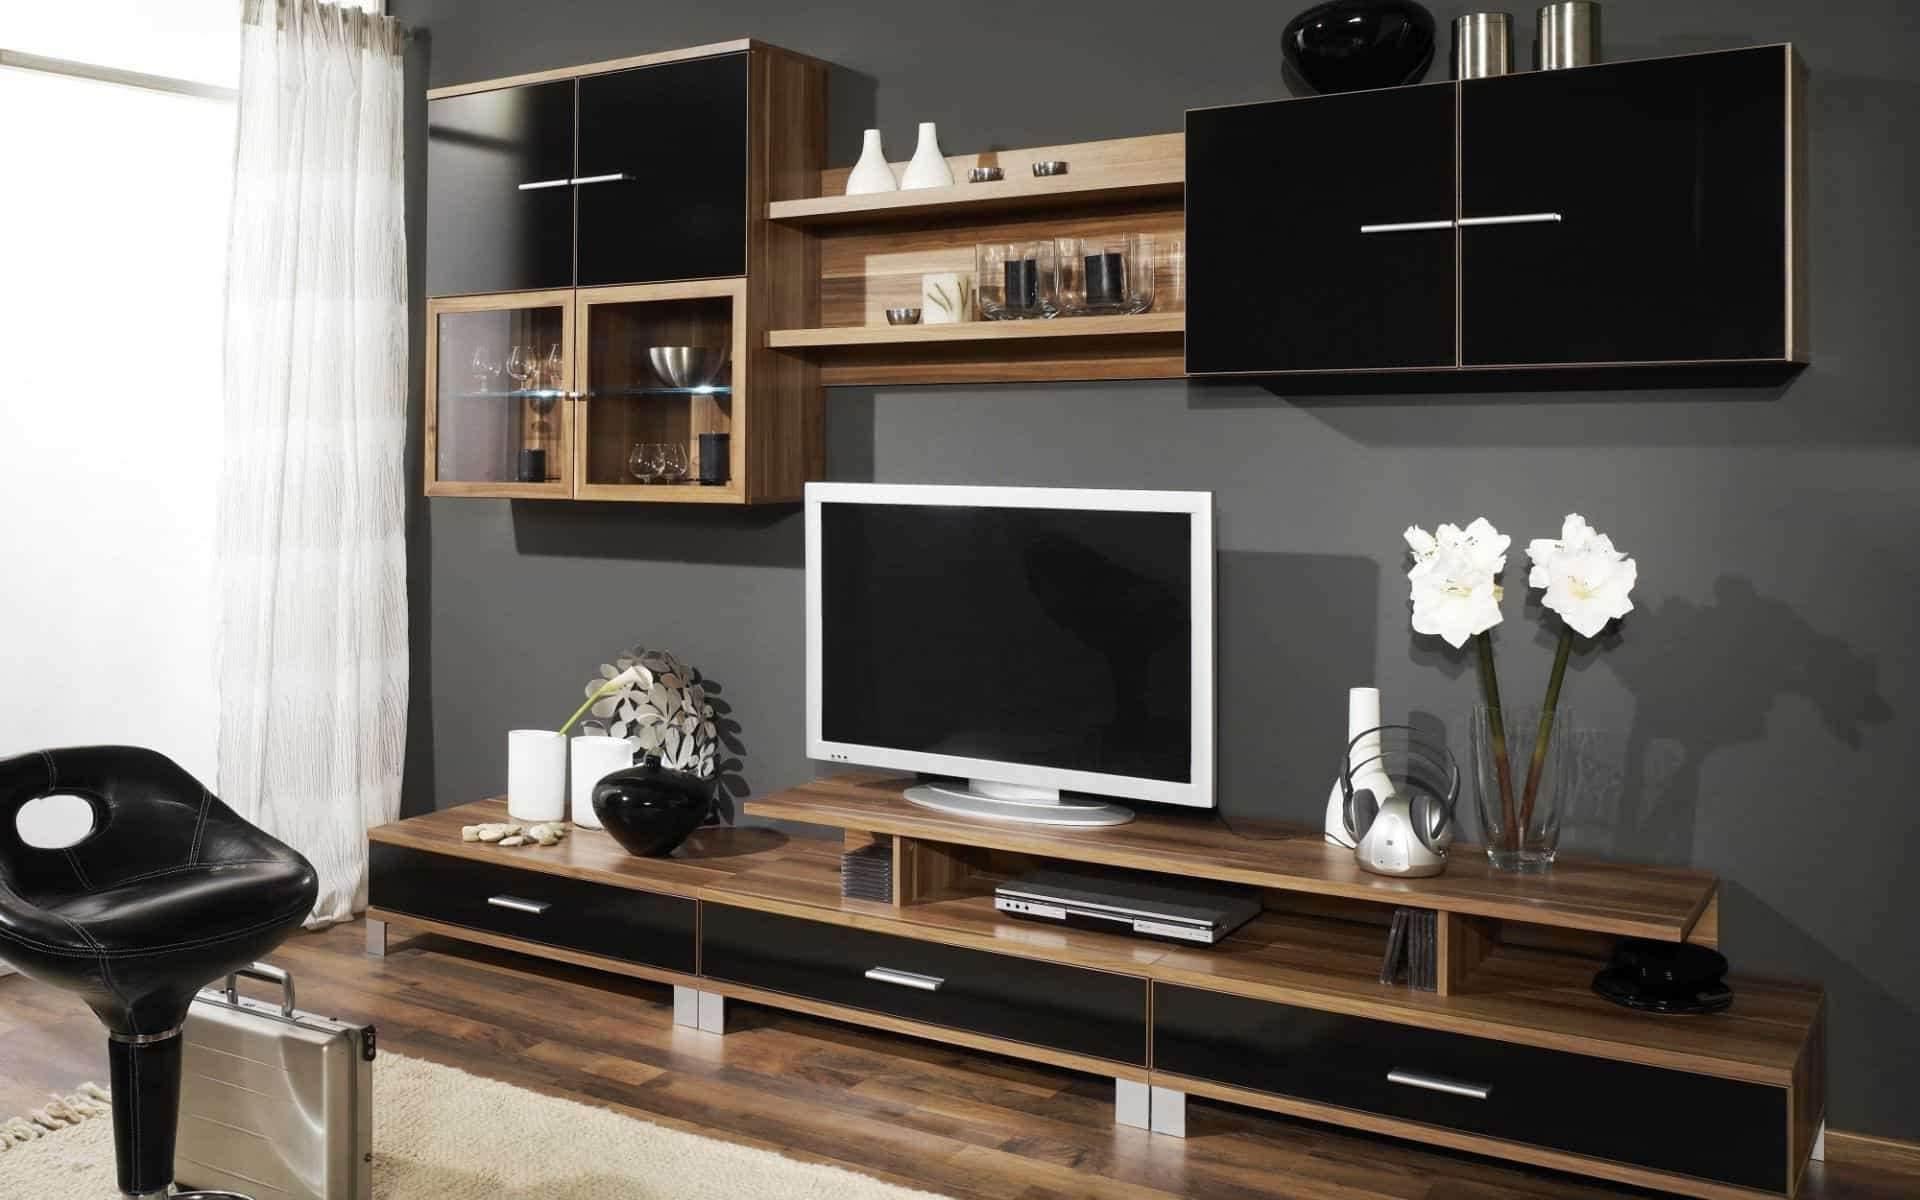 Modern Tv Stand With Bottom Drawers – Useful And Stylish Tv Stand Within Stylish Tv Stands (View 12 of 15)